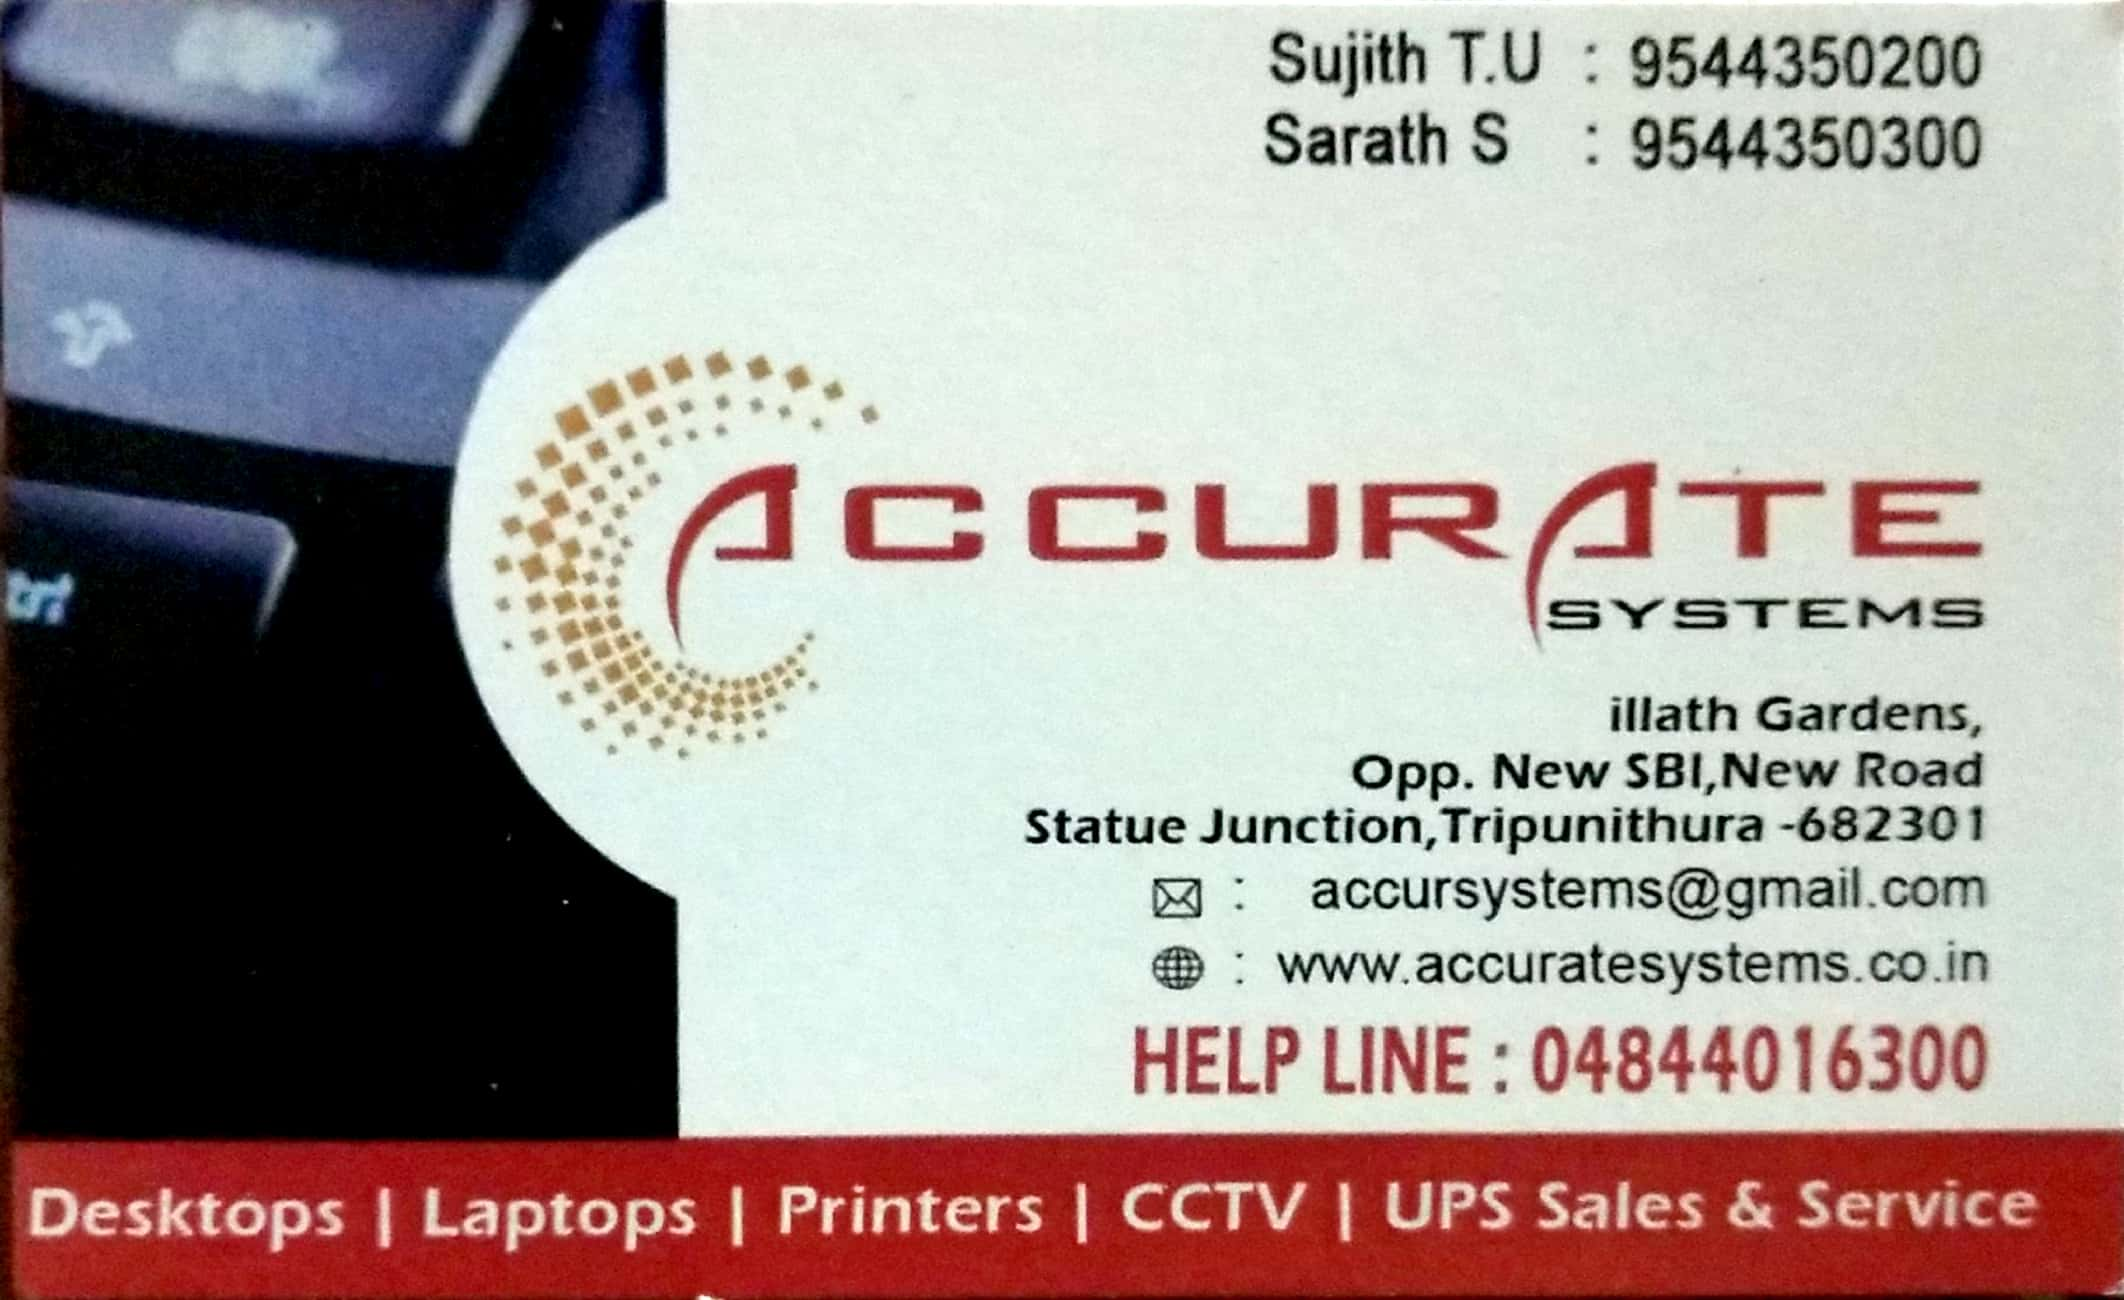 ACCURATE SYSTEMS, COMPUTER SALES & SERVICE,  service in Thrippunithura, Ernakulam